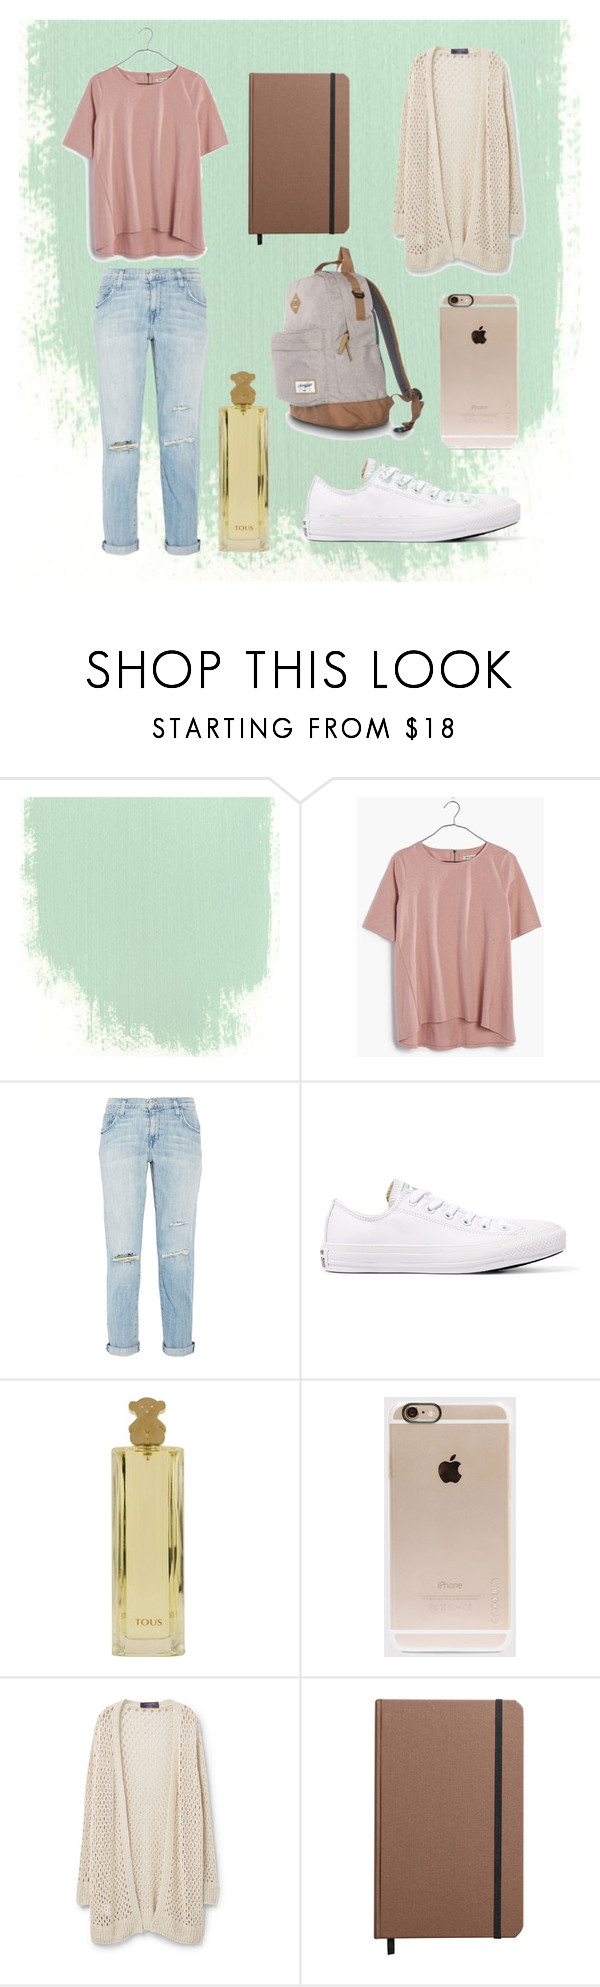 """Clases"" by rominajavierafg on Polyvore featuring moda, Madewell, Current/Elliott, Converse, TOUS, Incase, Violeta by Mango y Shinola"